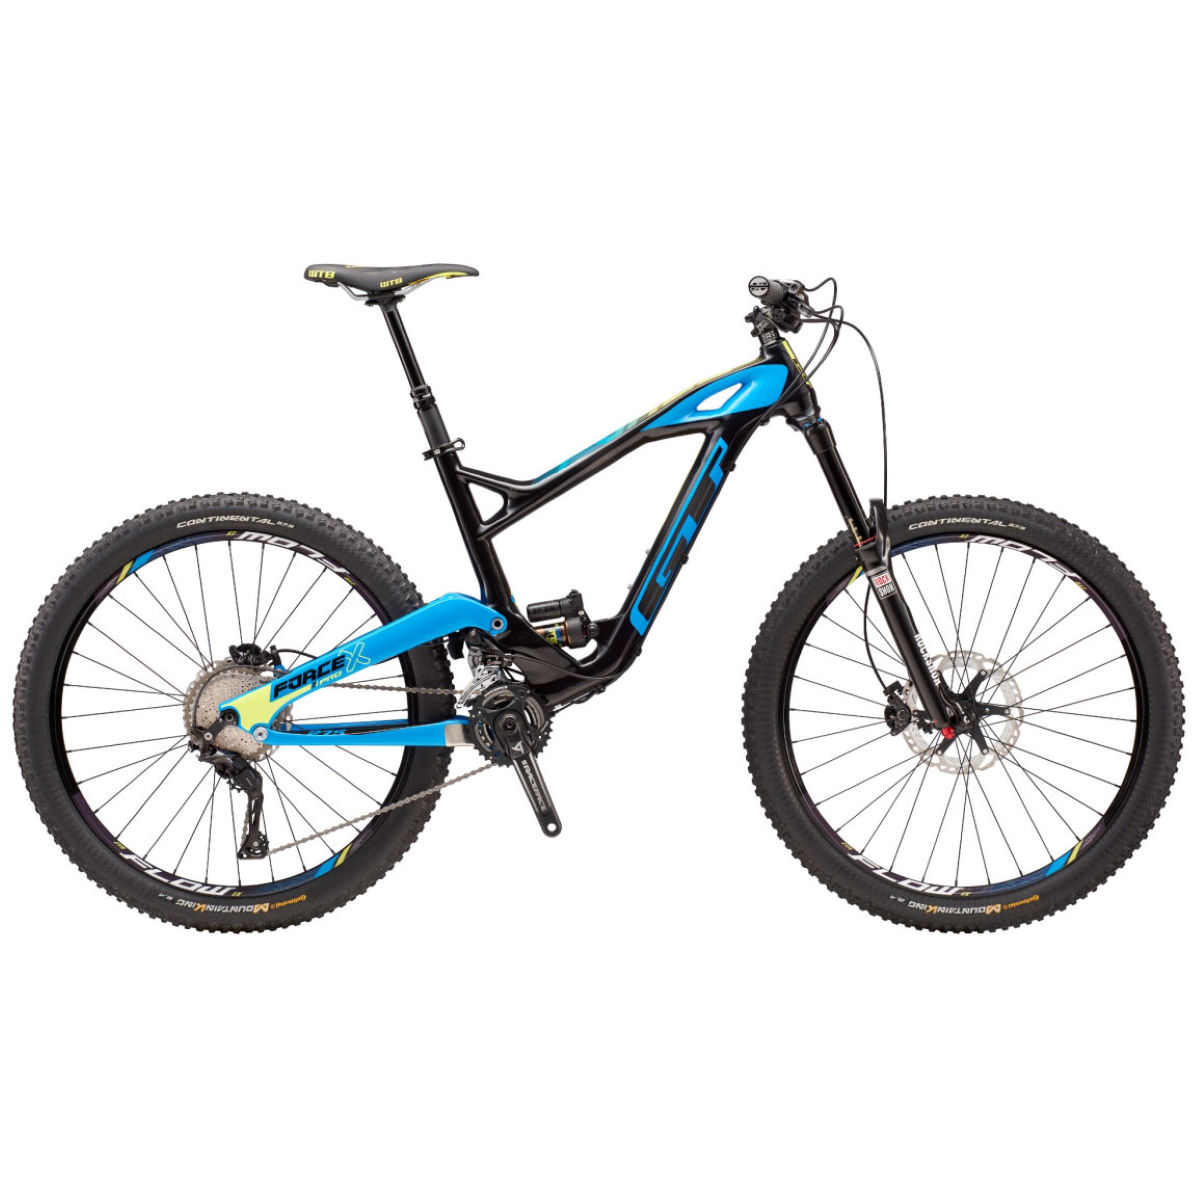 VTT GT Force Carbon Pro (2016) - Medium Stock Bike Raw VTT tout suspendu